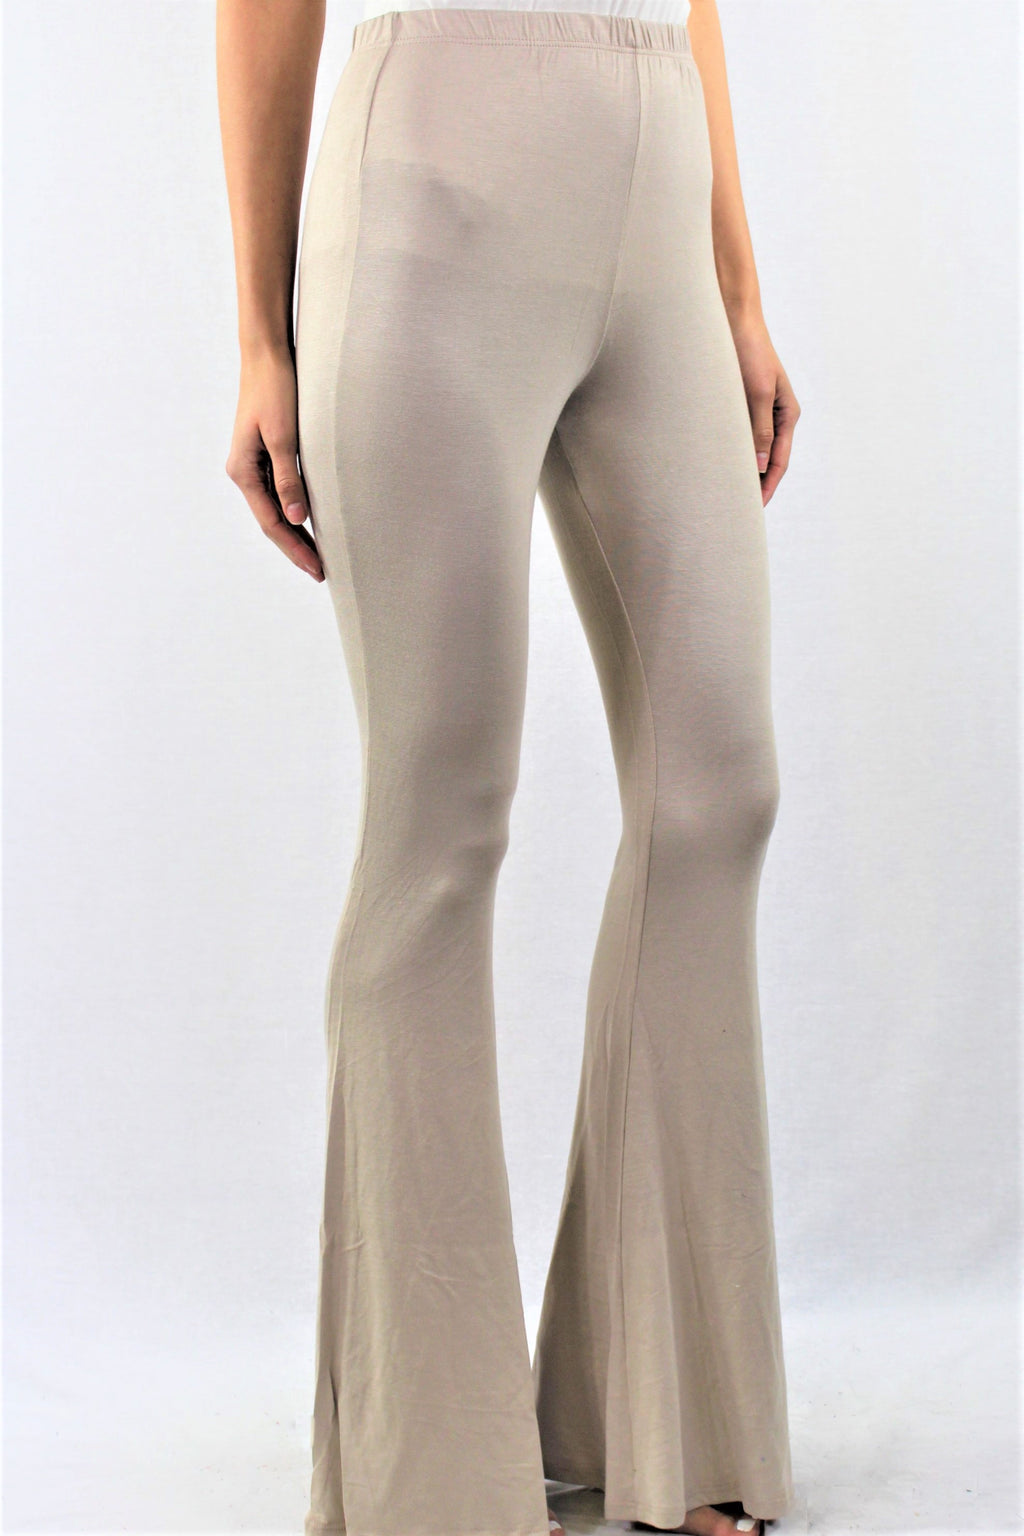 Solid Bell Bottom Pants